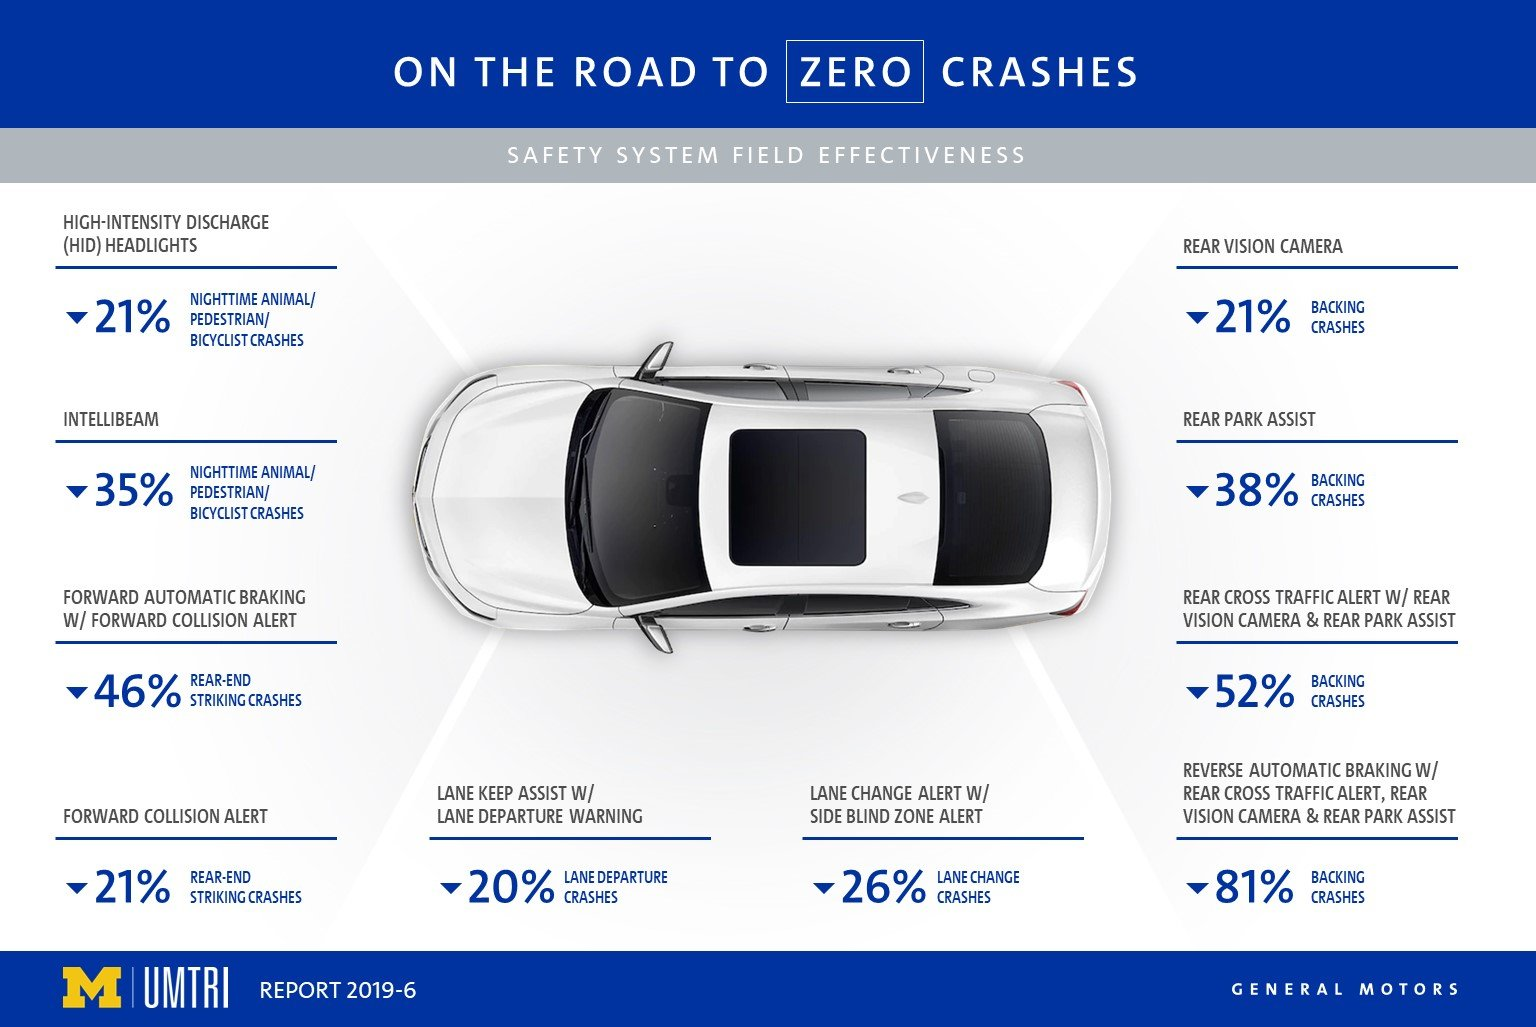 Automatic Emergency Braking Reduces Rear-end Crashes by 46%